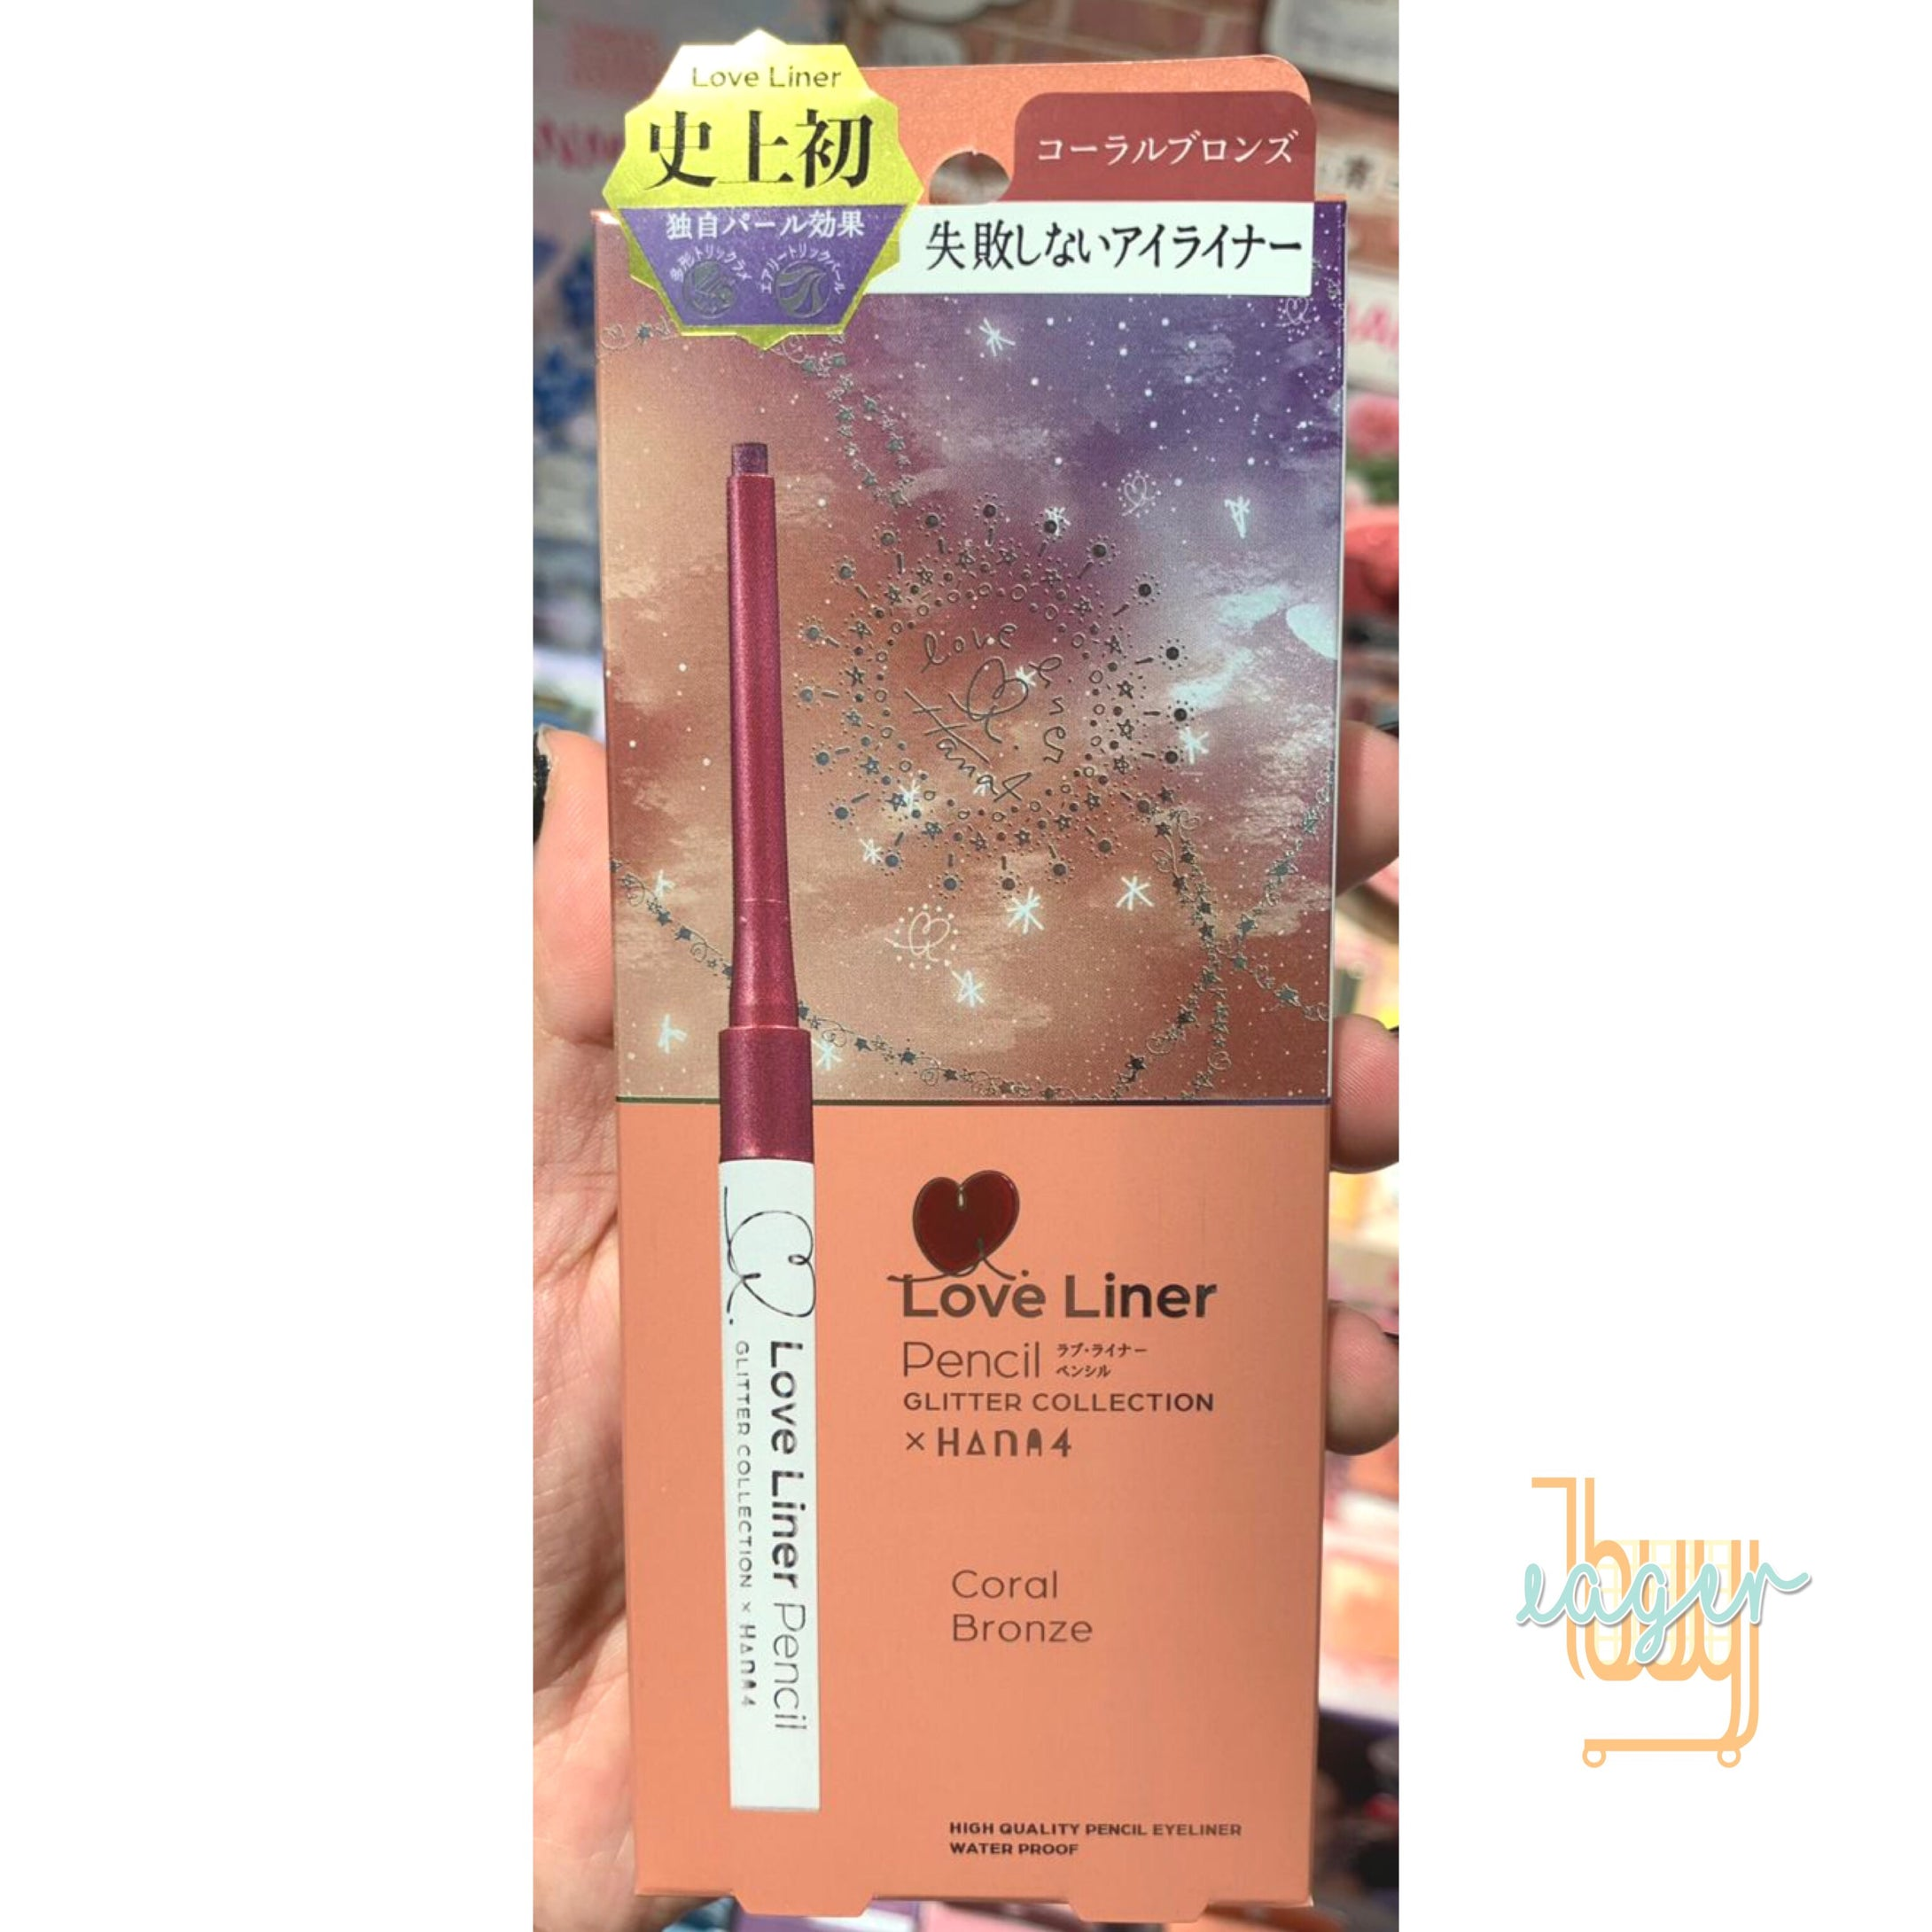 LOVE LINER - Glitter Collection x HANA4- Pencil Eyeliner - Coral Bronze